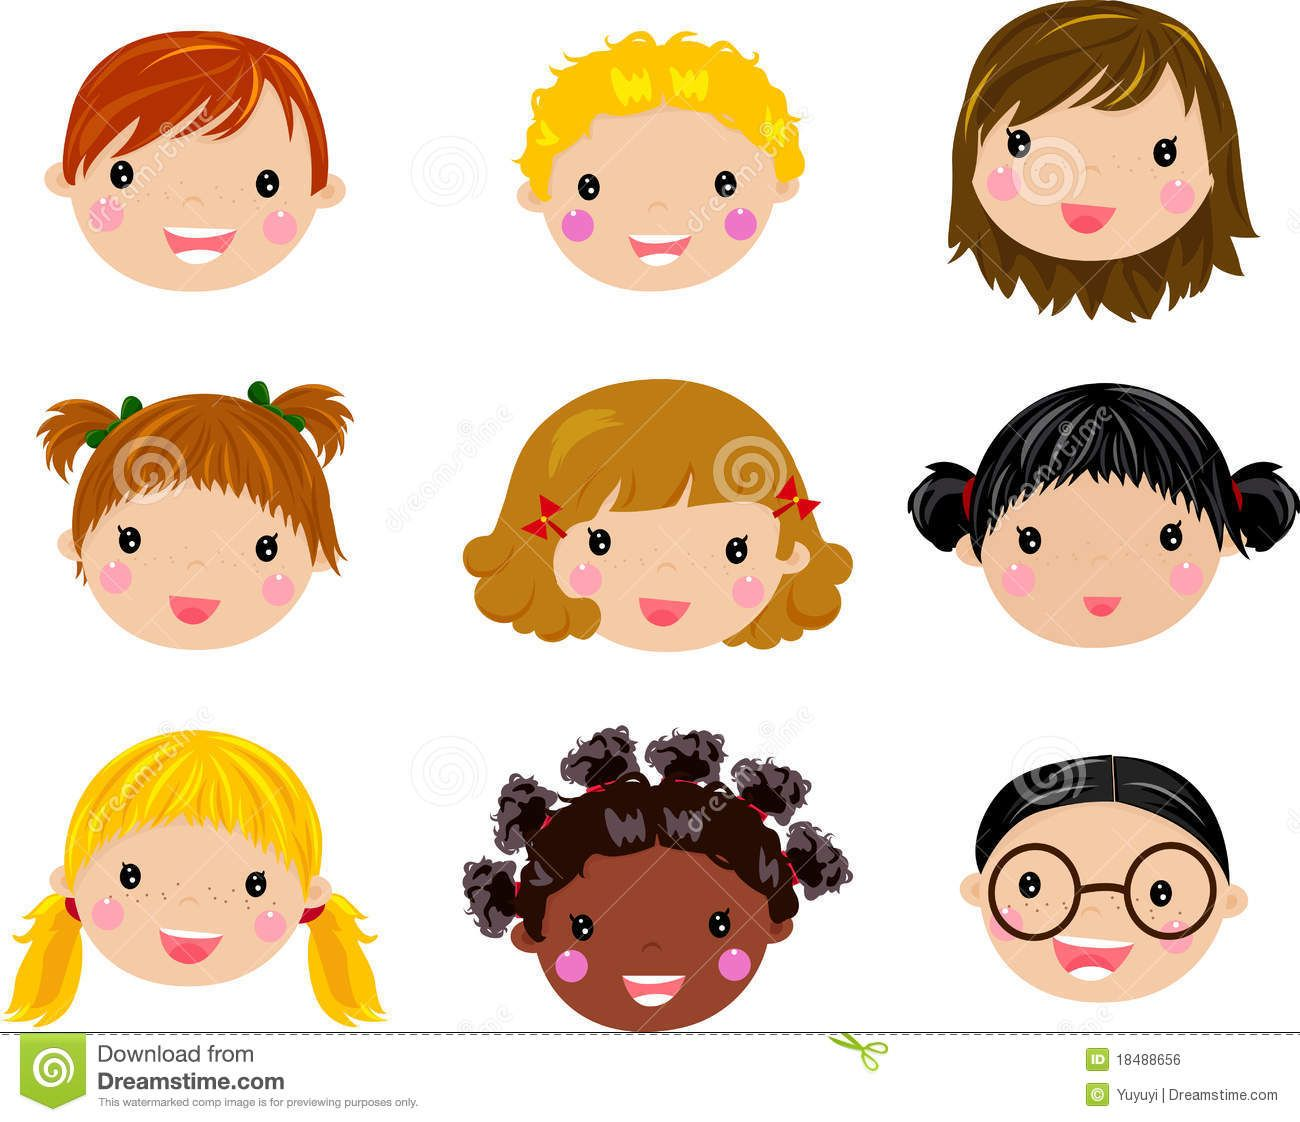 Child face clipart jpg black and white library Cartoon children face | RS | Girl face drawing, Cartoon girl drawing ... jpg black and white library